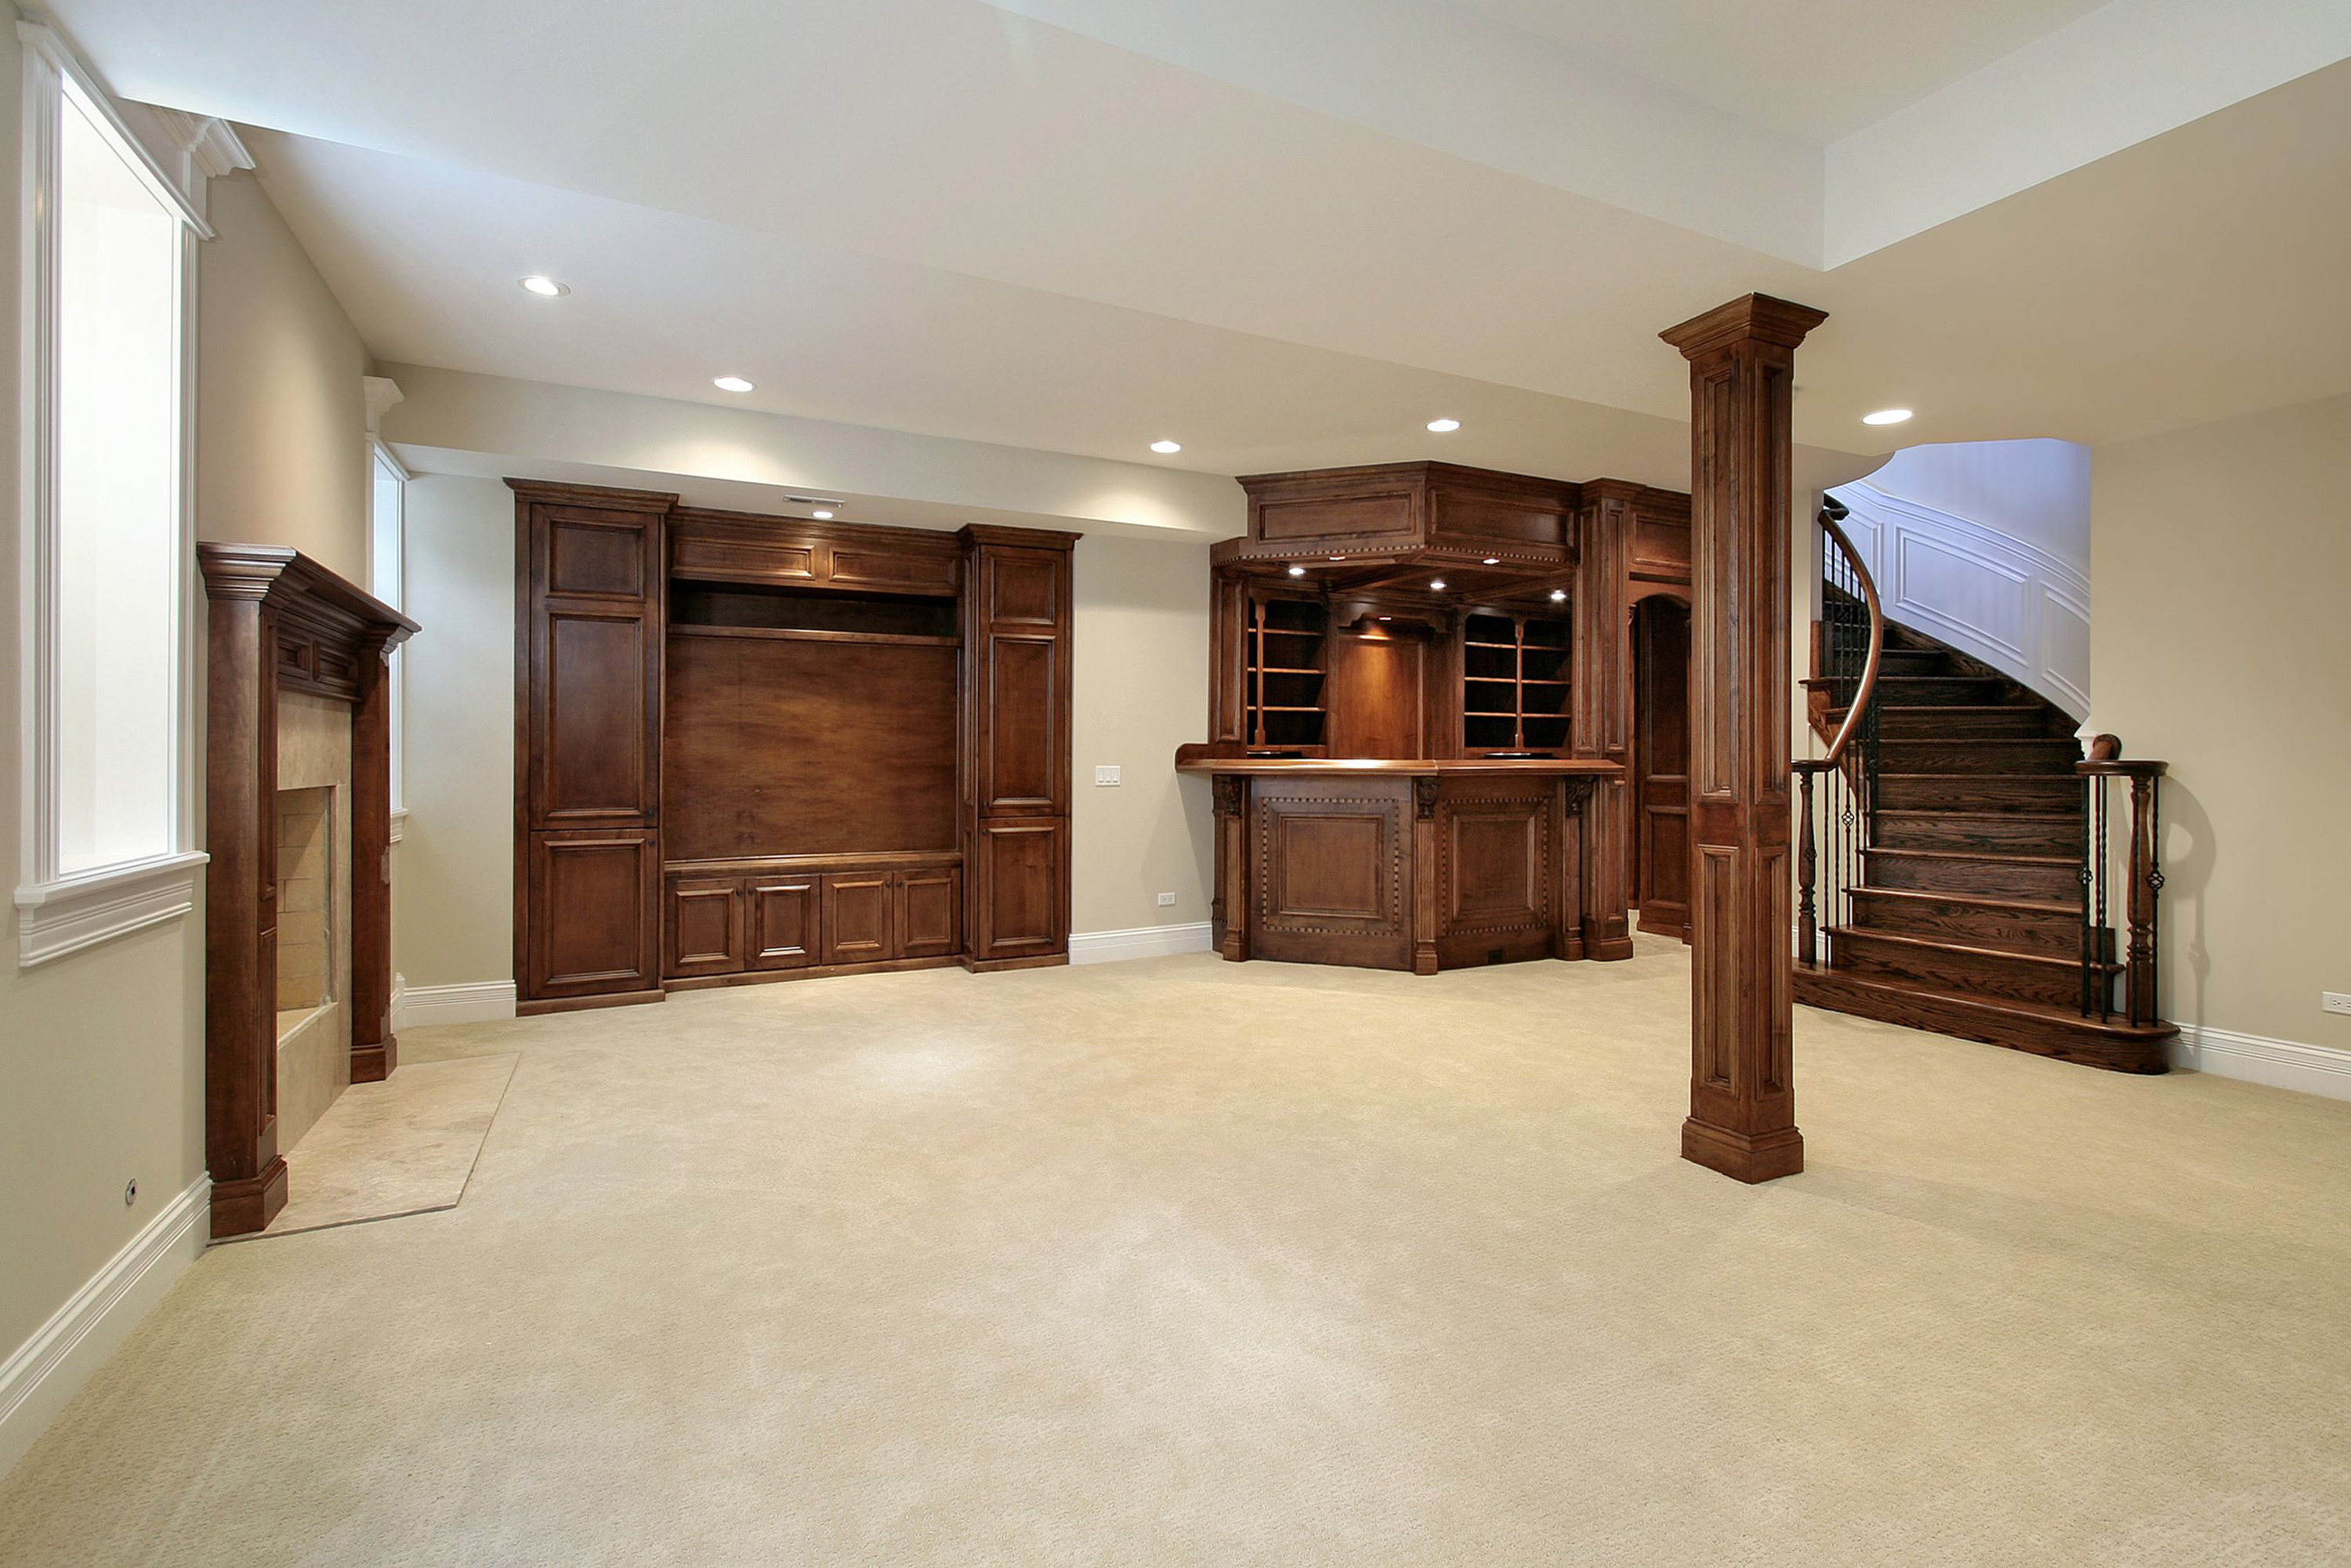 finished basement remodeling mendham basking ridge branchburg somerset greenbrook mountainside nj rms home remodeling